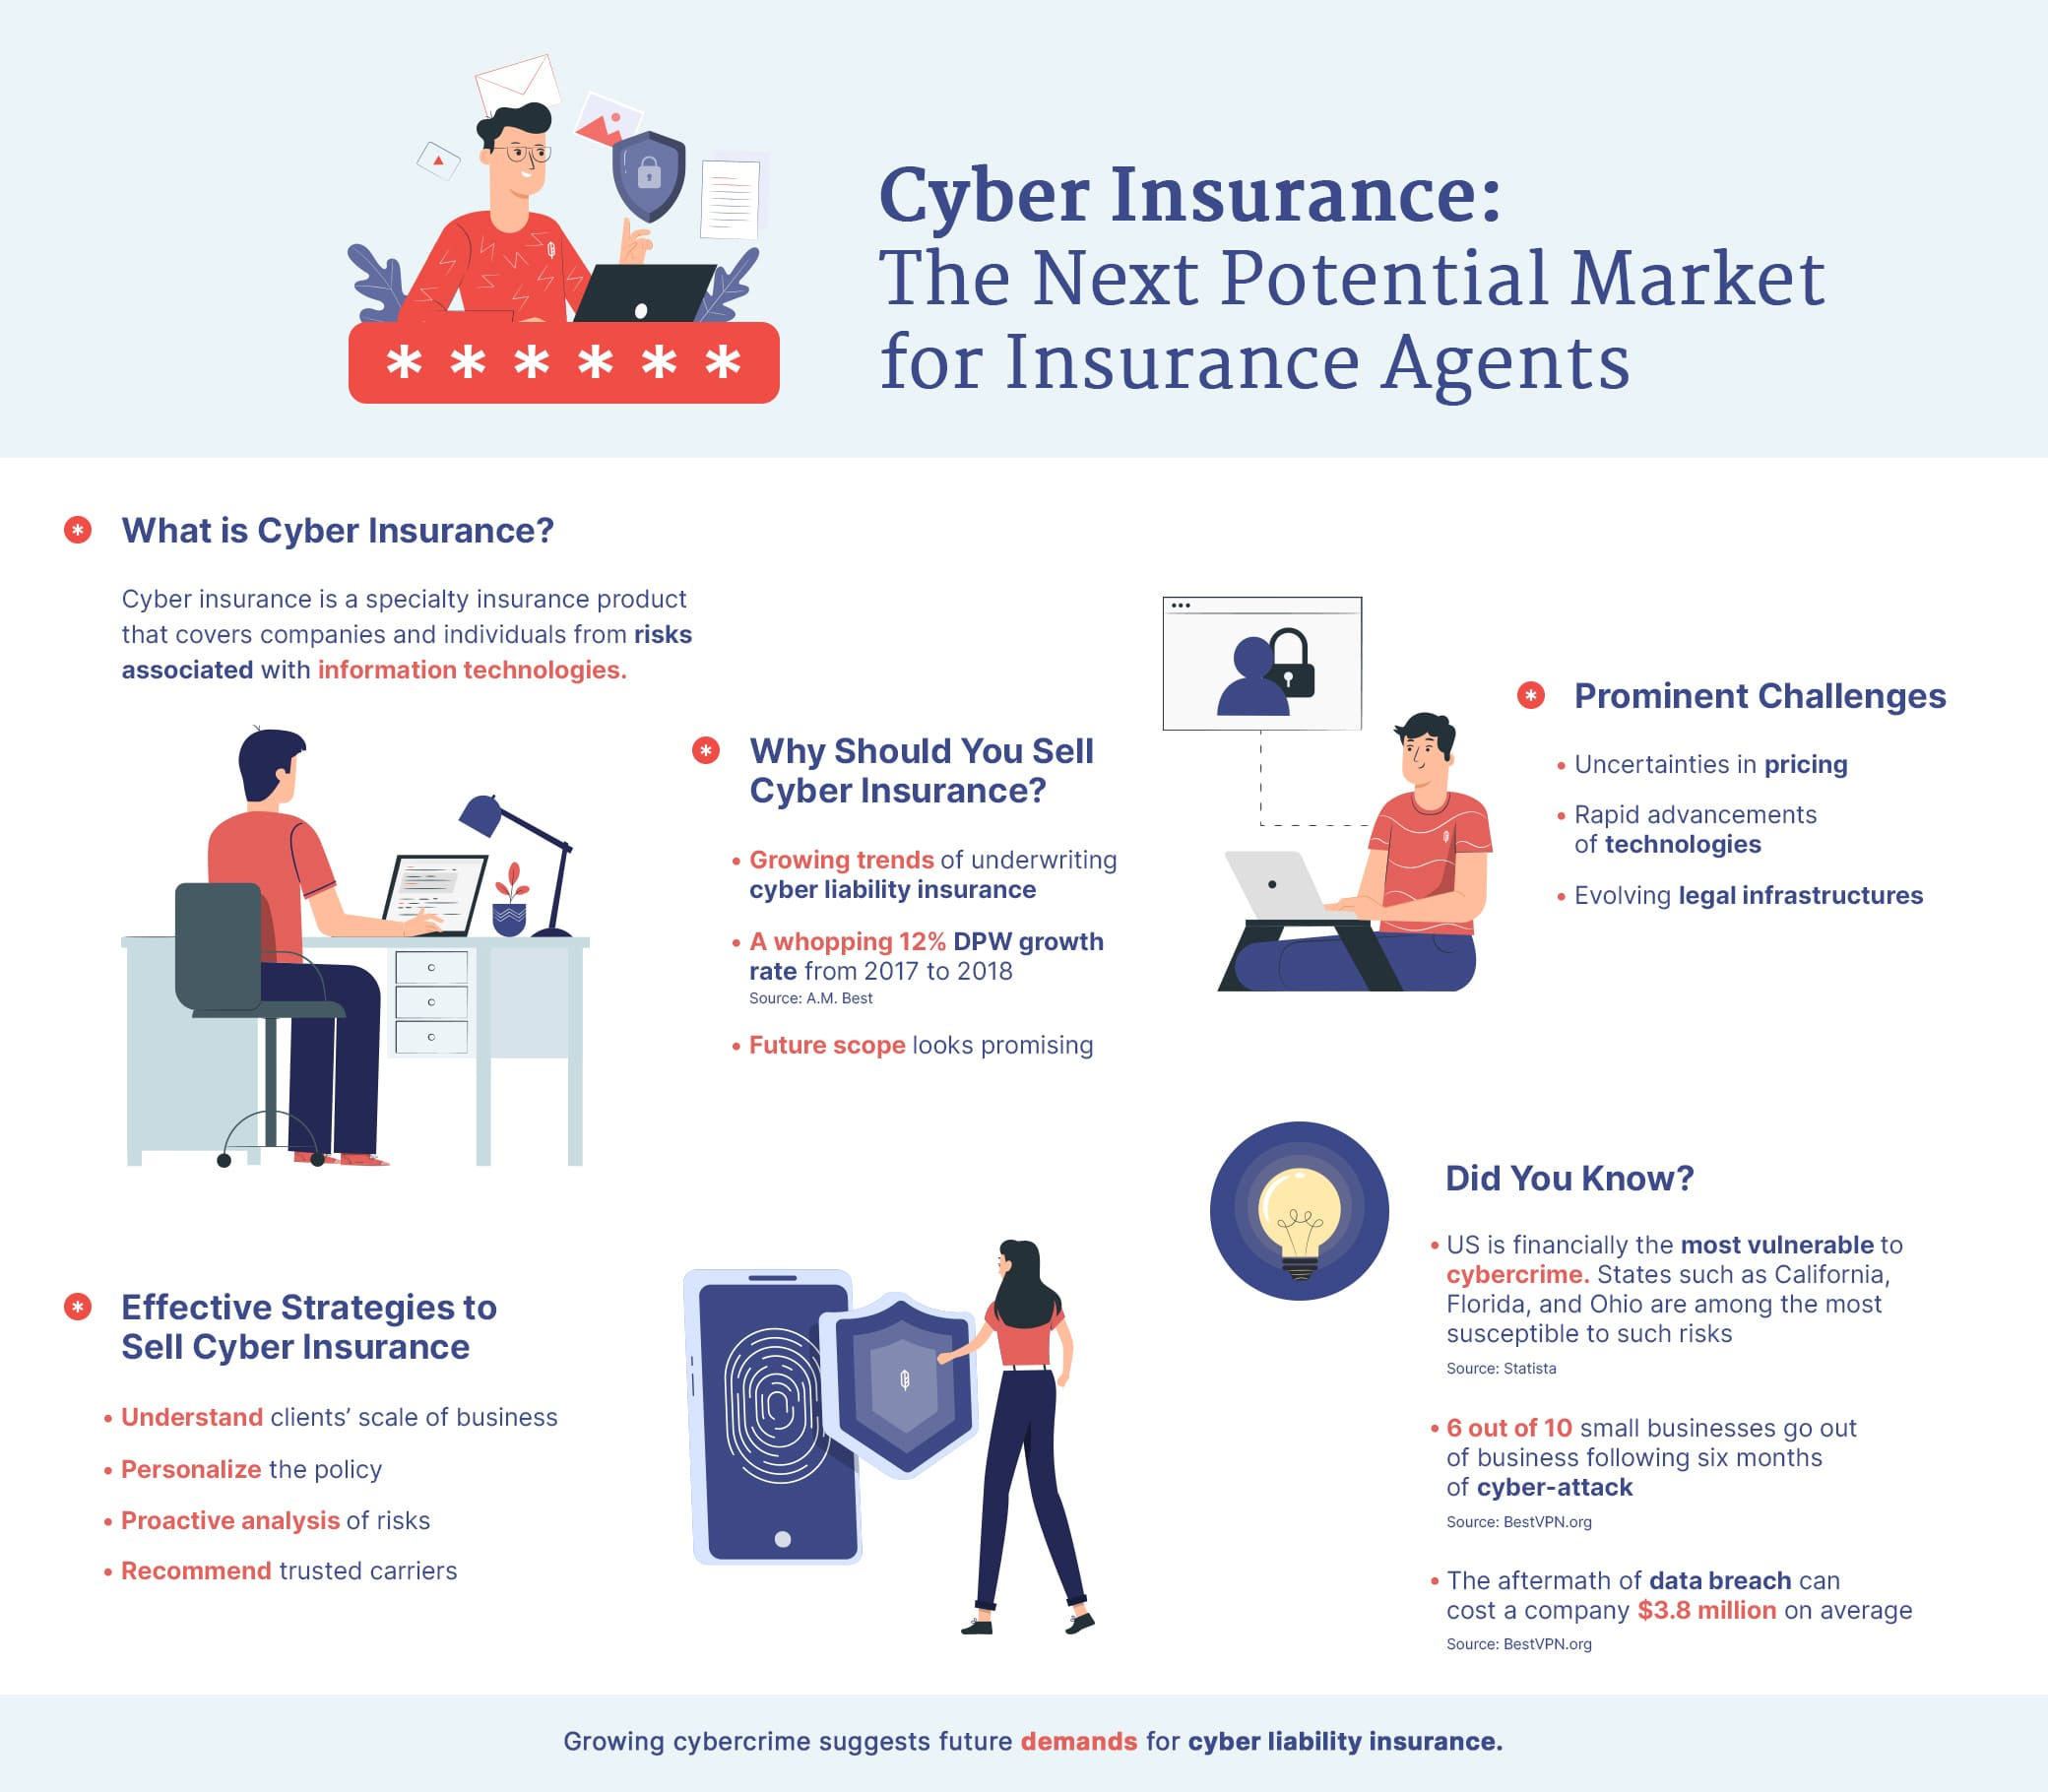 Cyber Insurance: The Next Potential Market for Insurance Agents